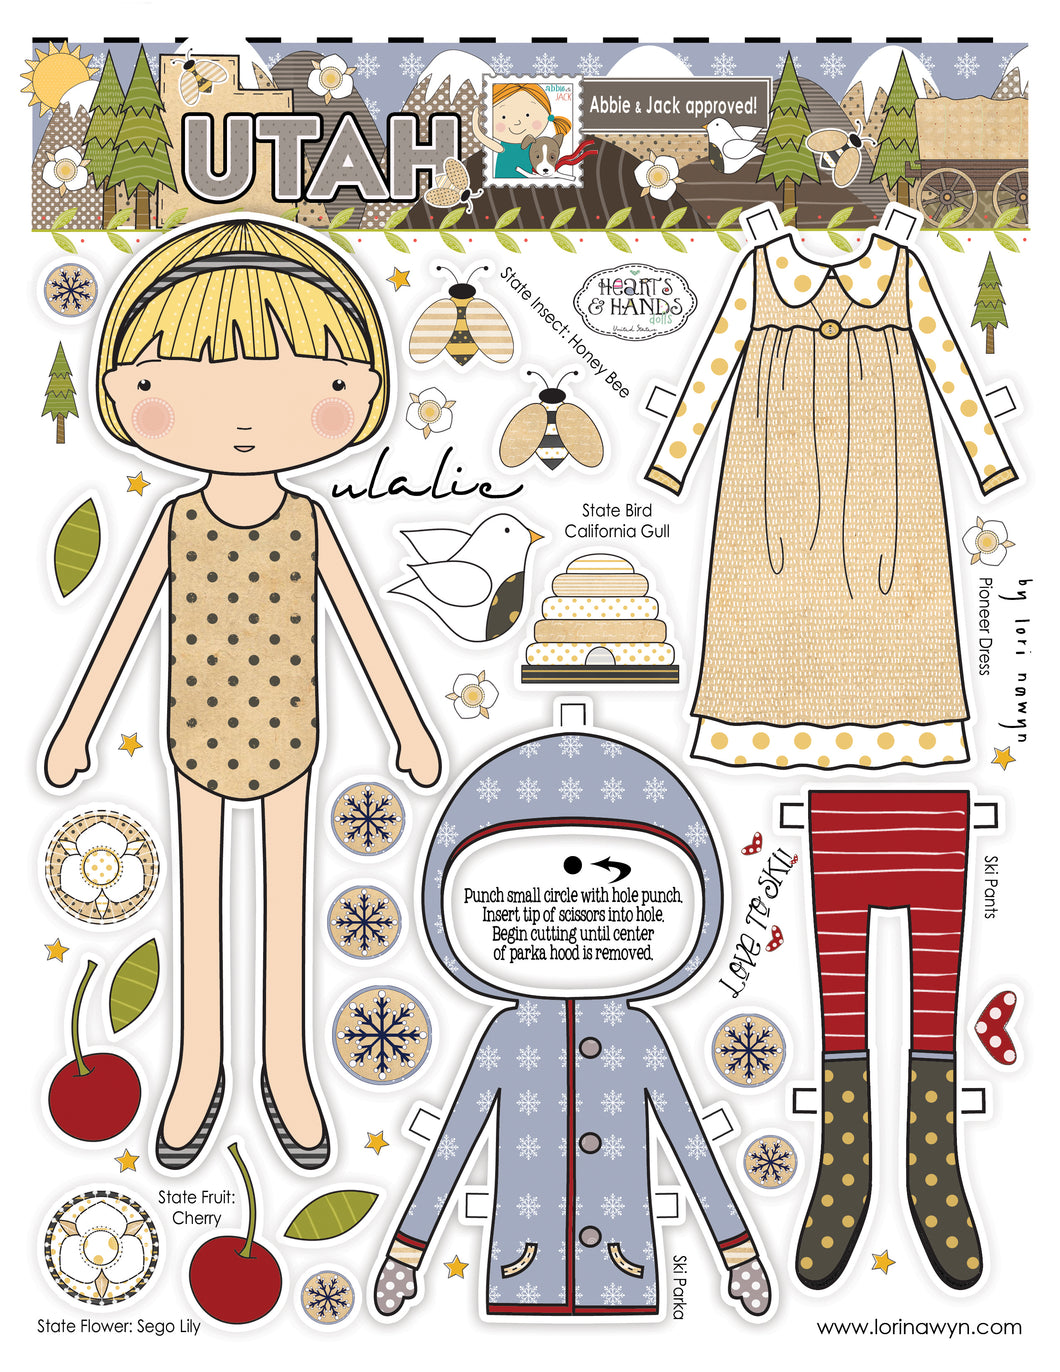 UTAH - DIY DIGITAL DOWNLOAD PAPER DOLL